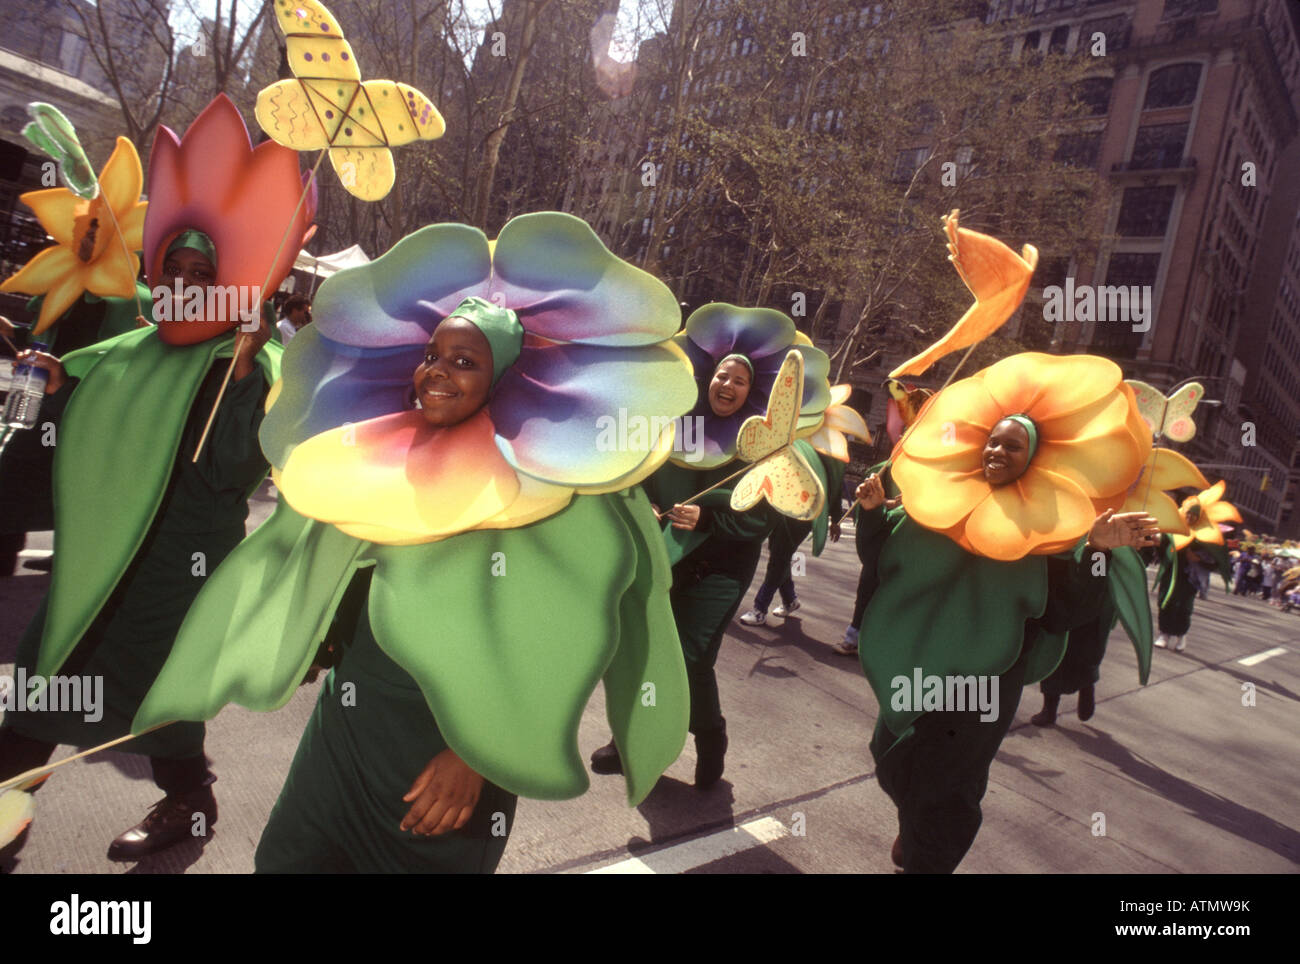 Earth Day New York City.Parade of the Planets. Environmentalists dressed as colorful flowers march up the Avenue - Stock Image